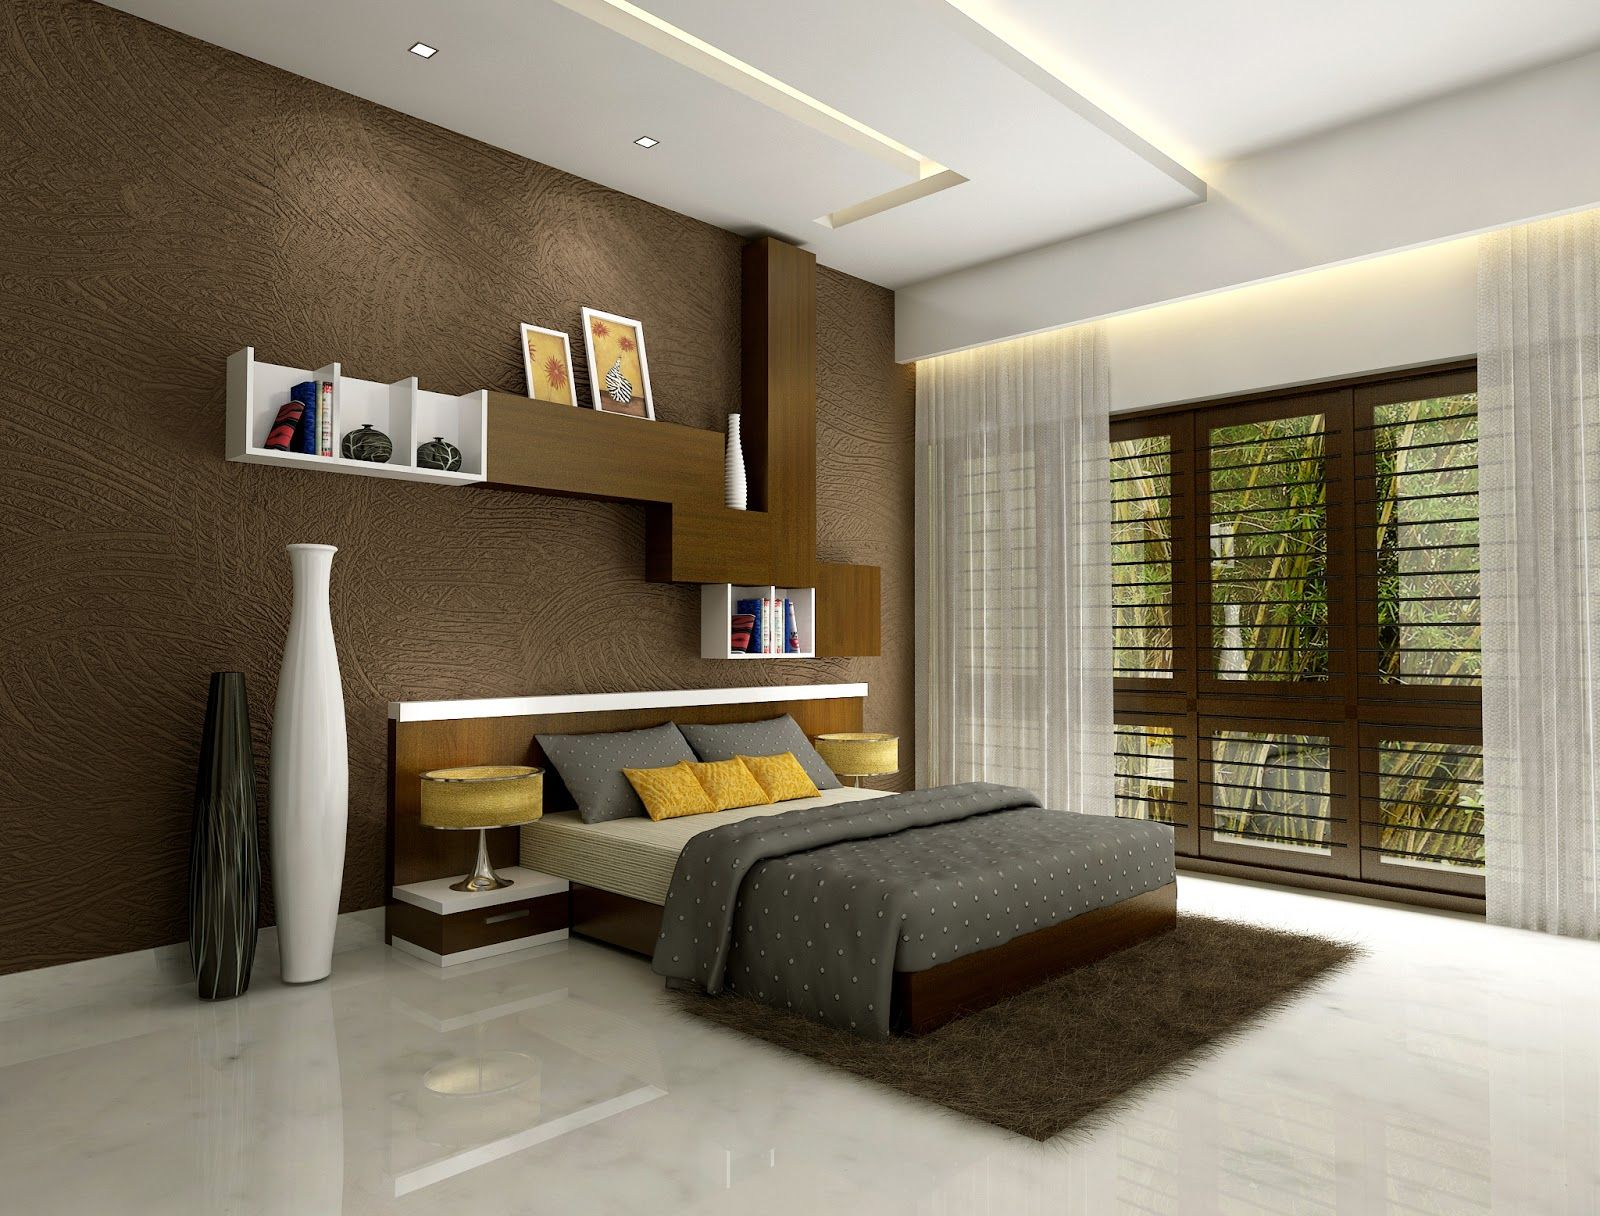 Contemporary Bedroom Designs 2012 Boconcept T On Ideas